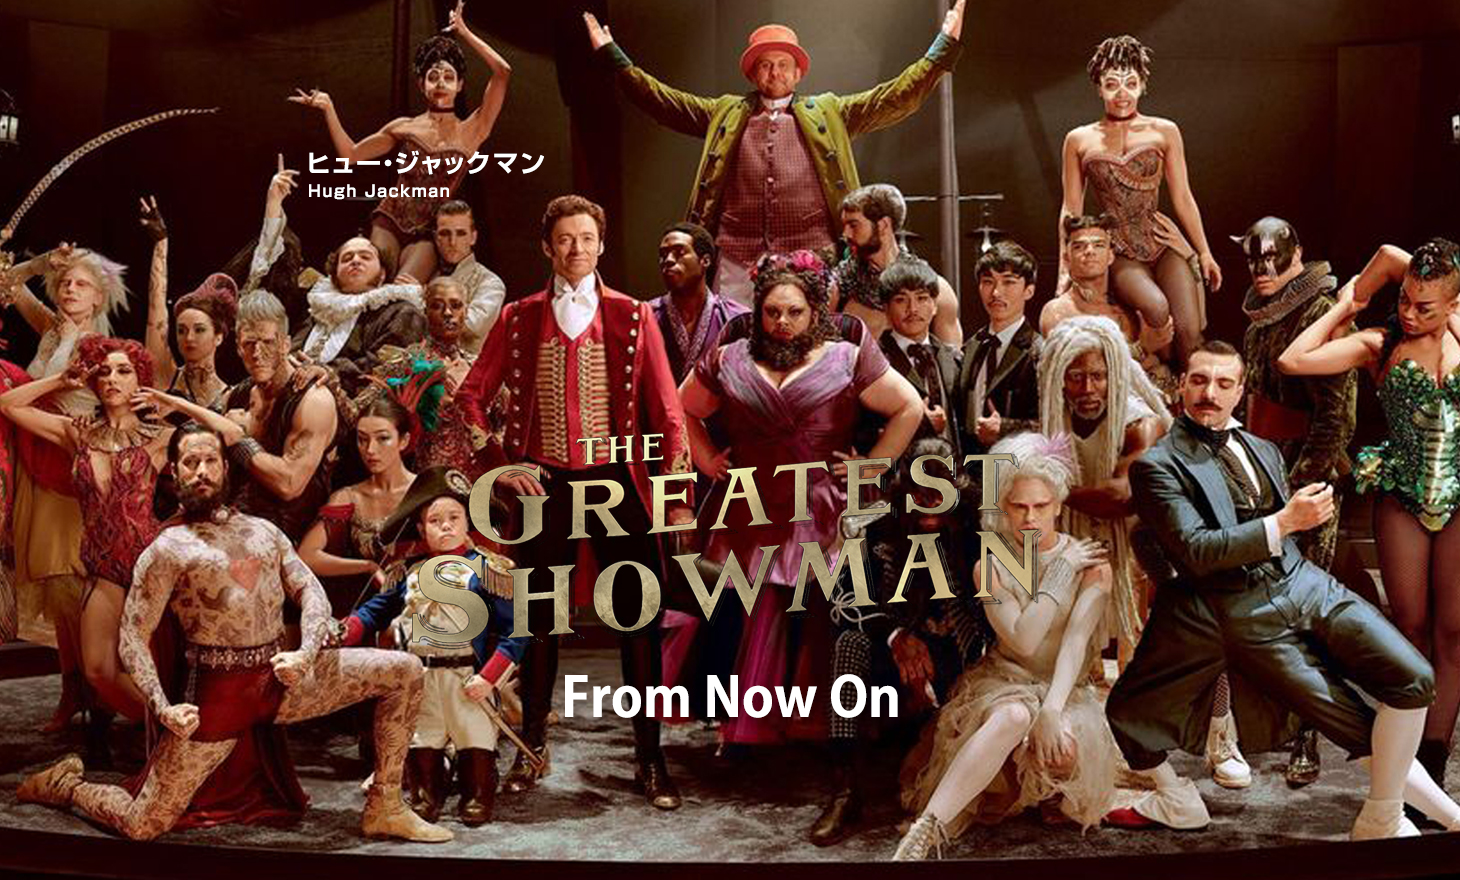 The Greatest Showman(グレイテスト・ショーマン):From Now On